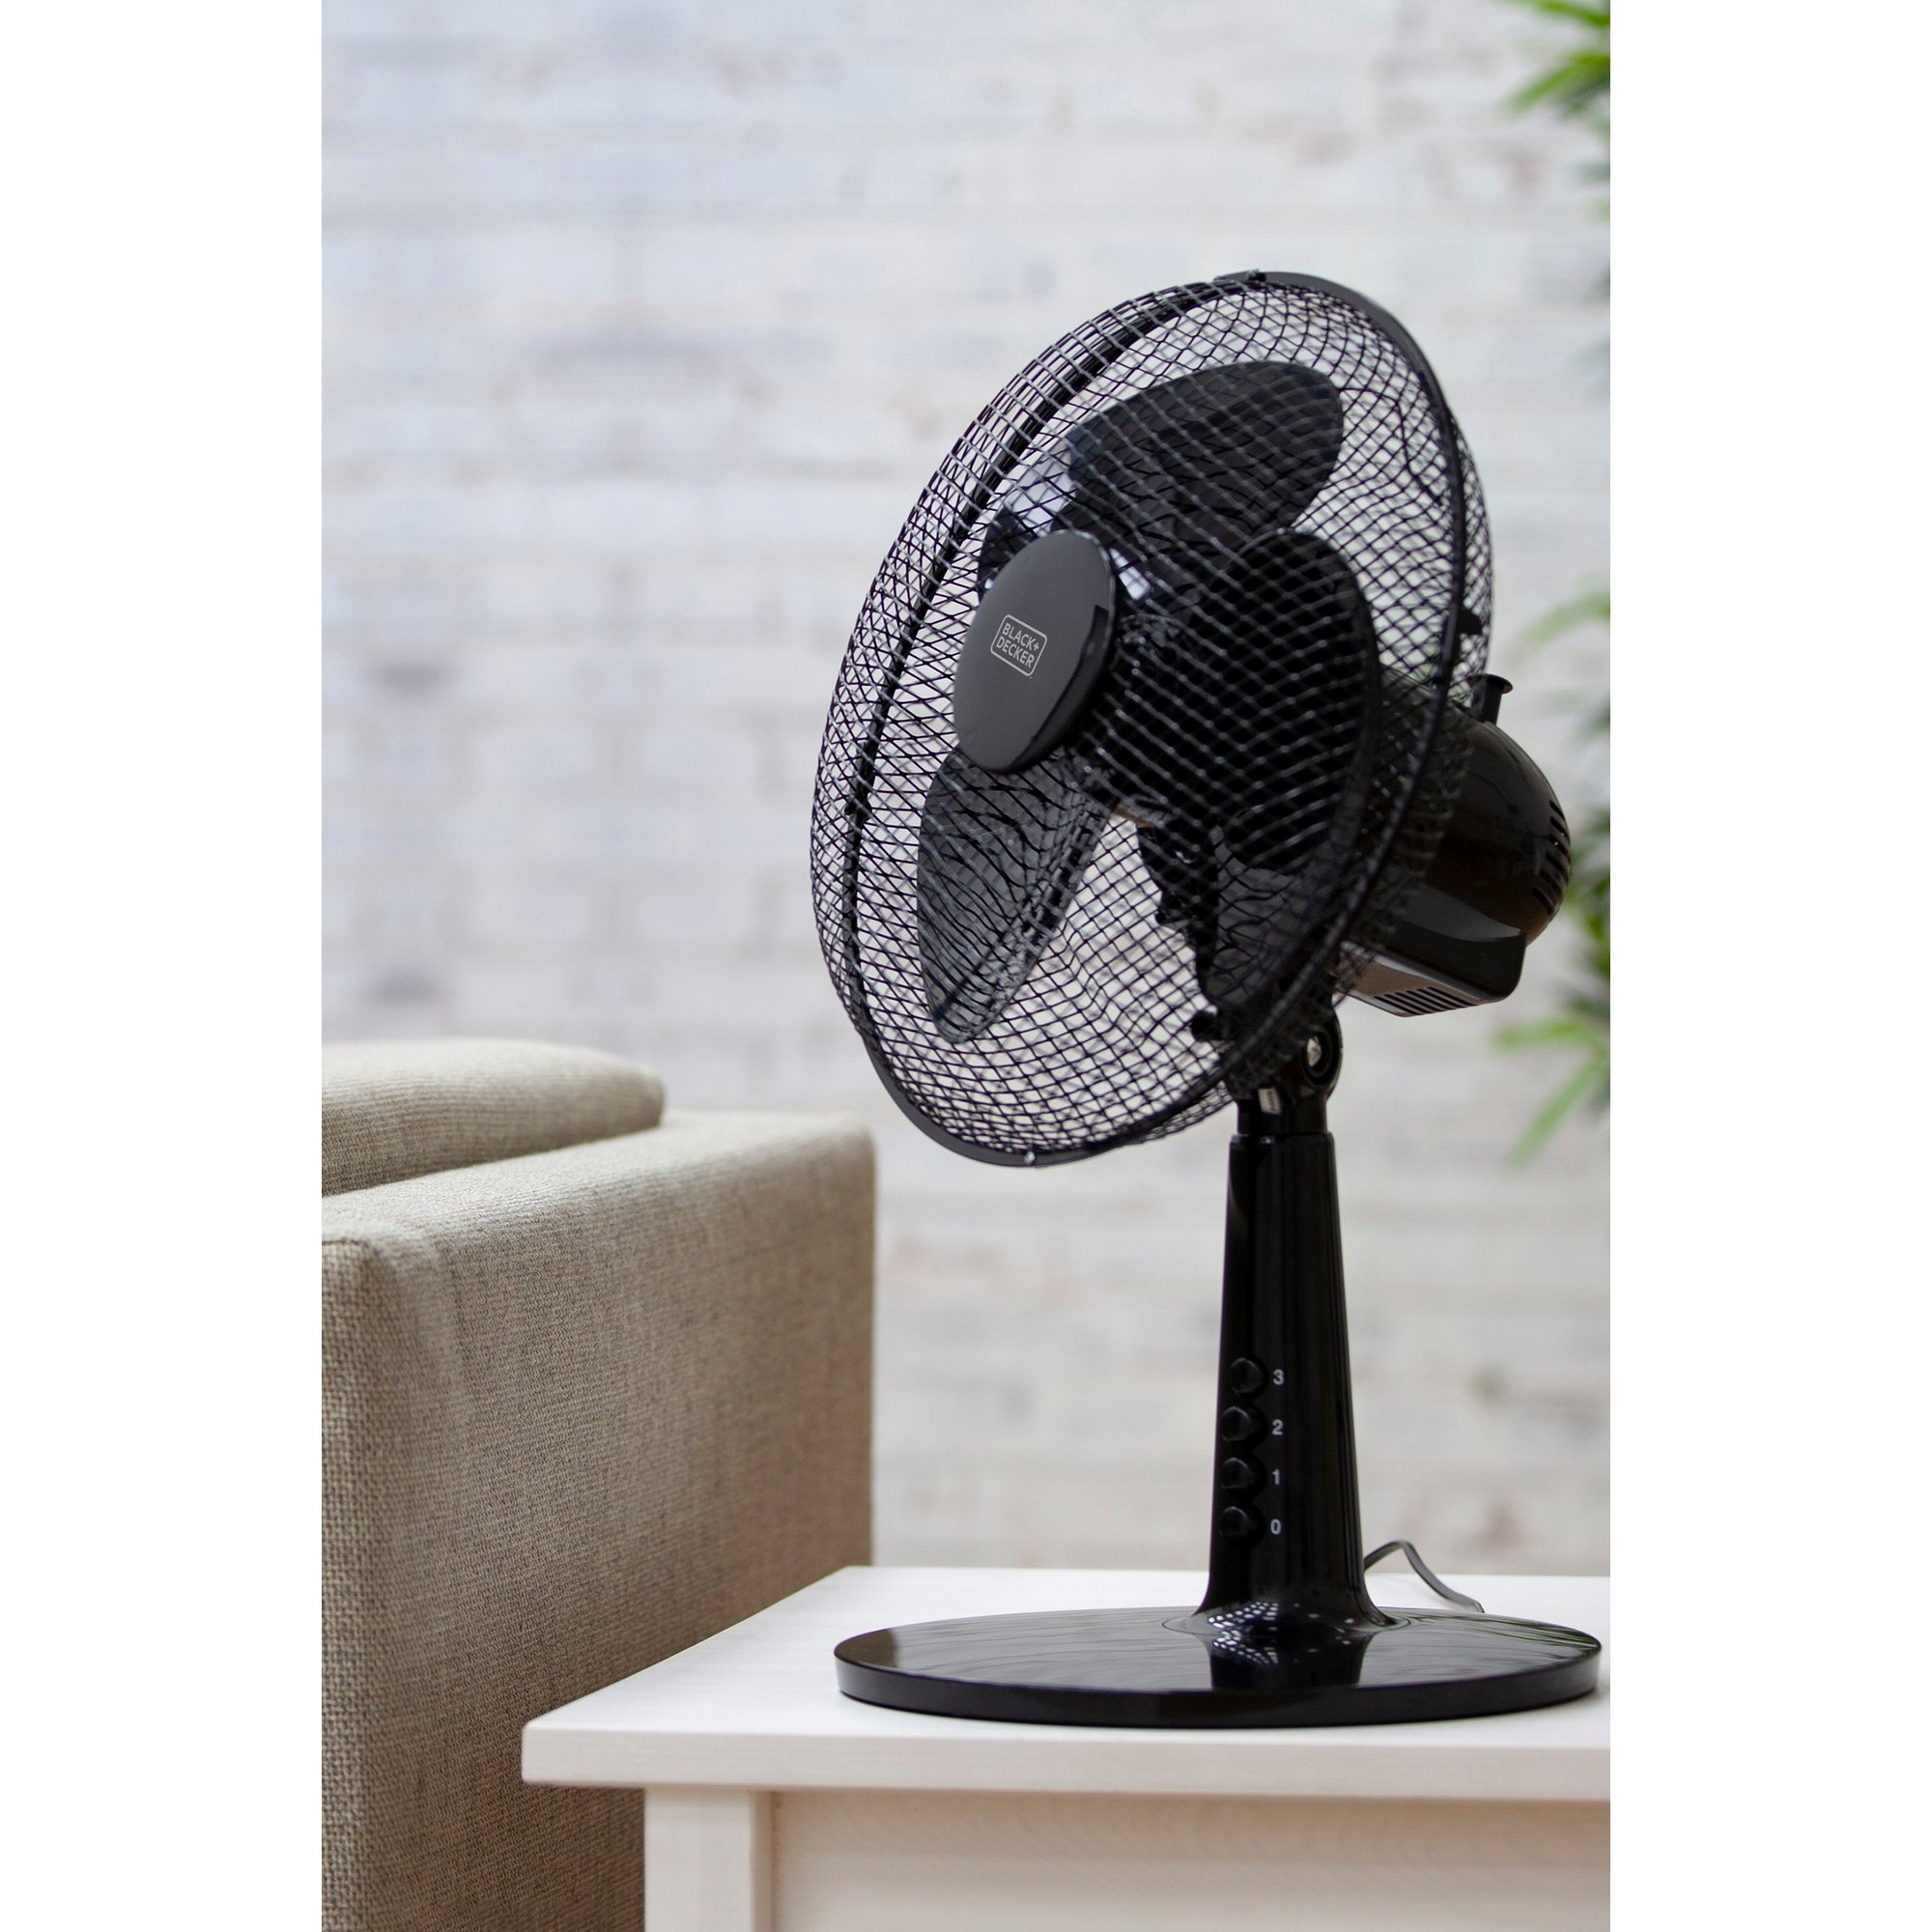 Image of Black and Decker 12 Inch Desk Fan with Long Life Motor